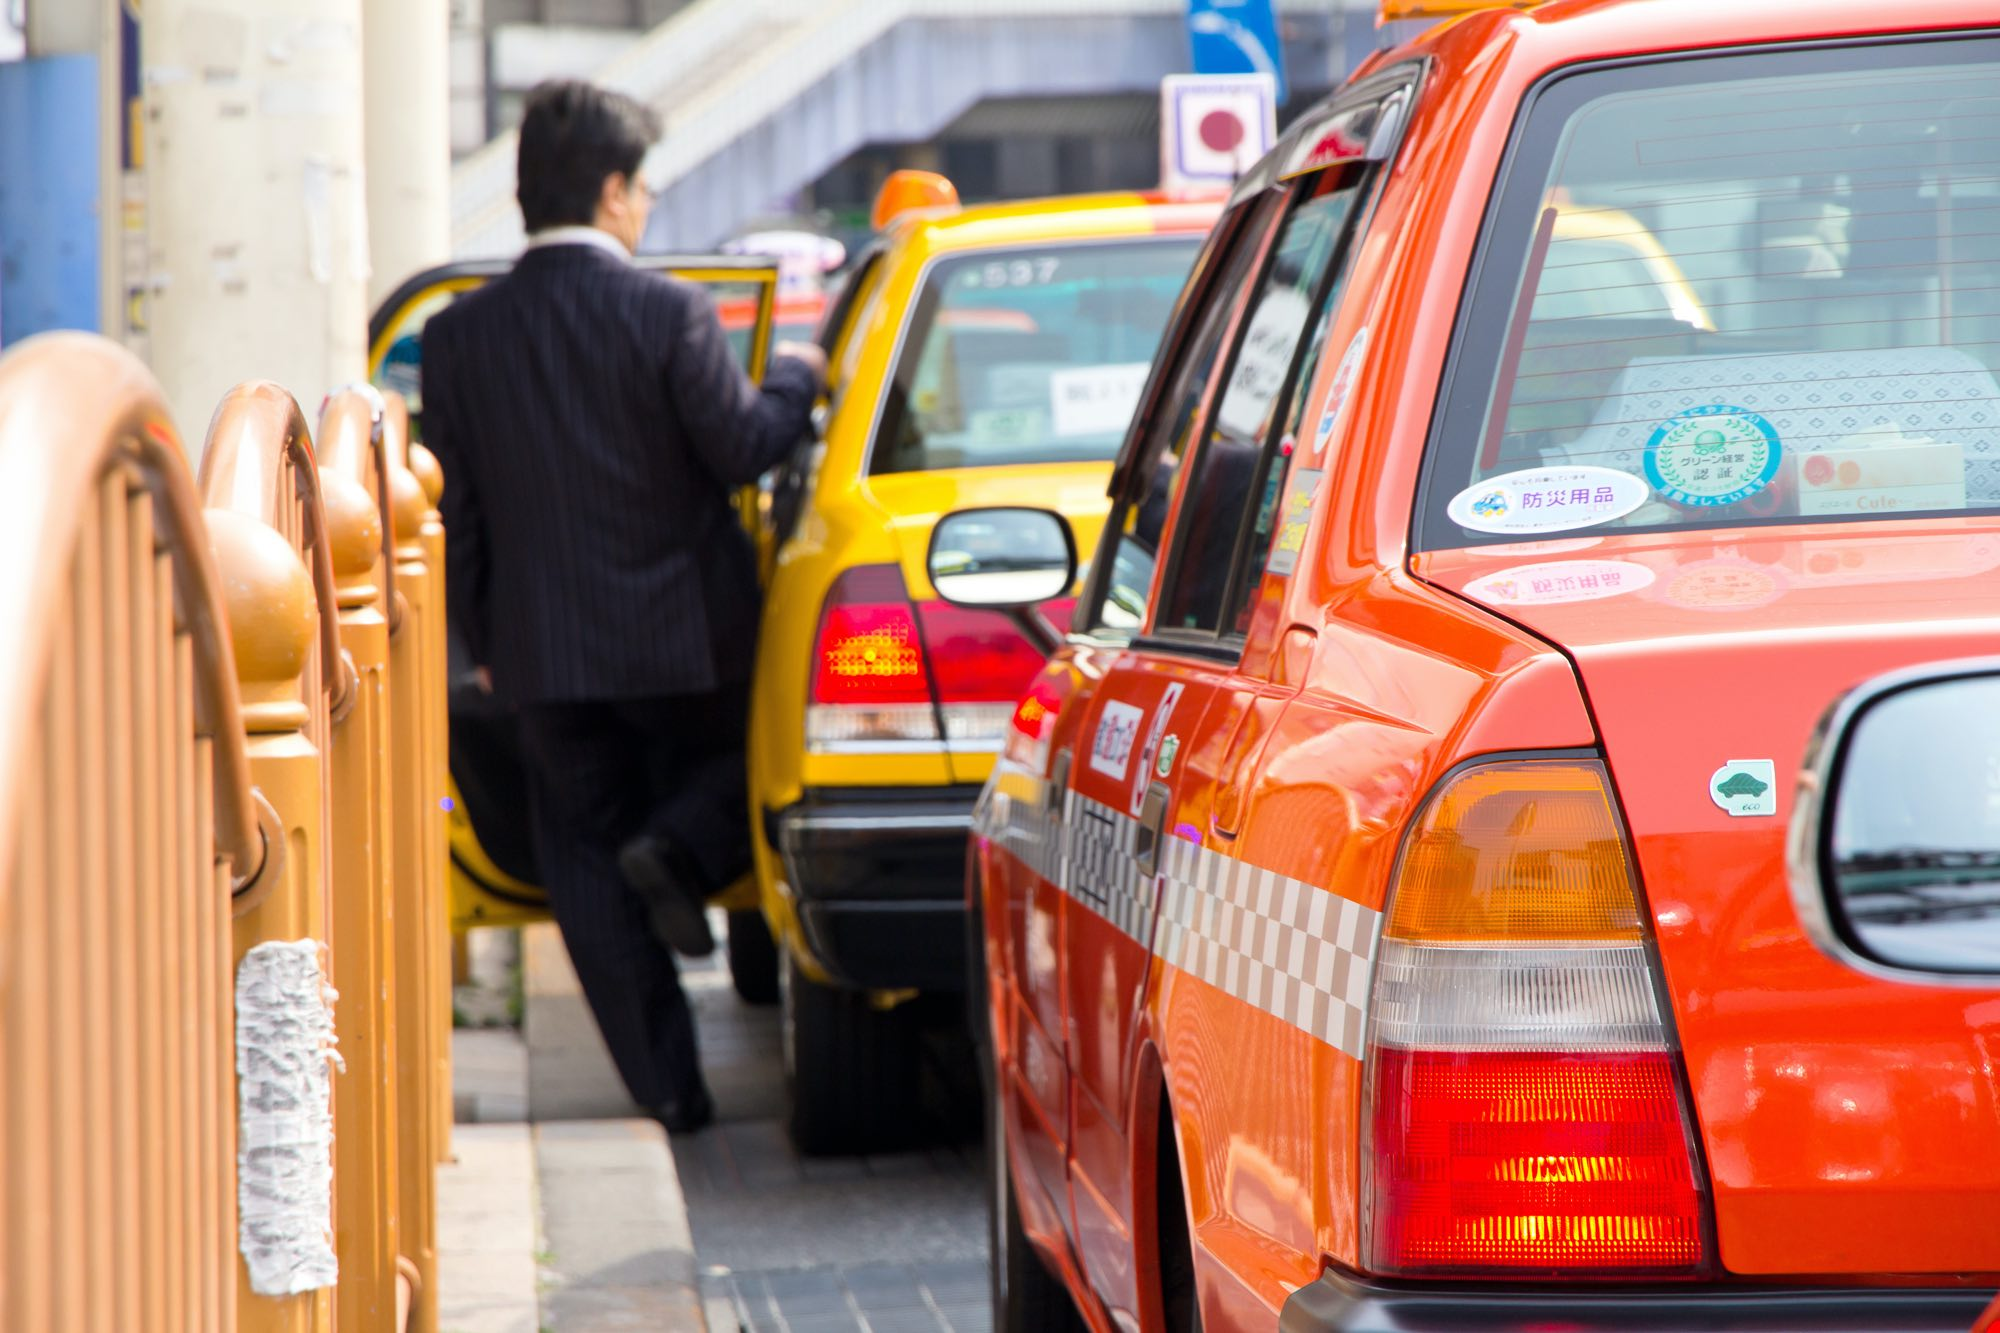 Man getting in a taxi, japanese stickers on taxis